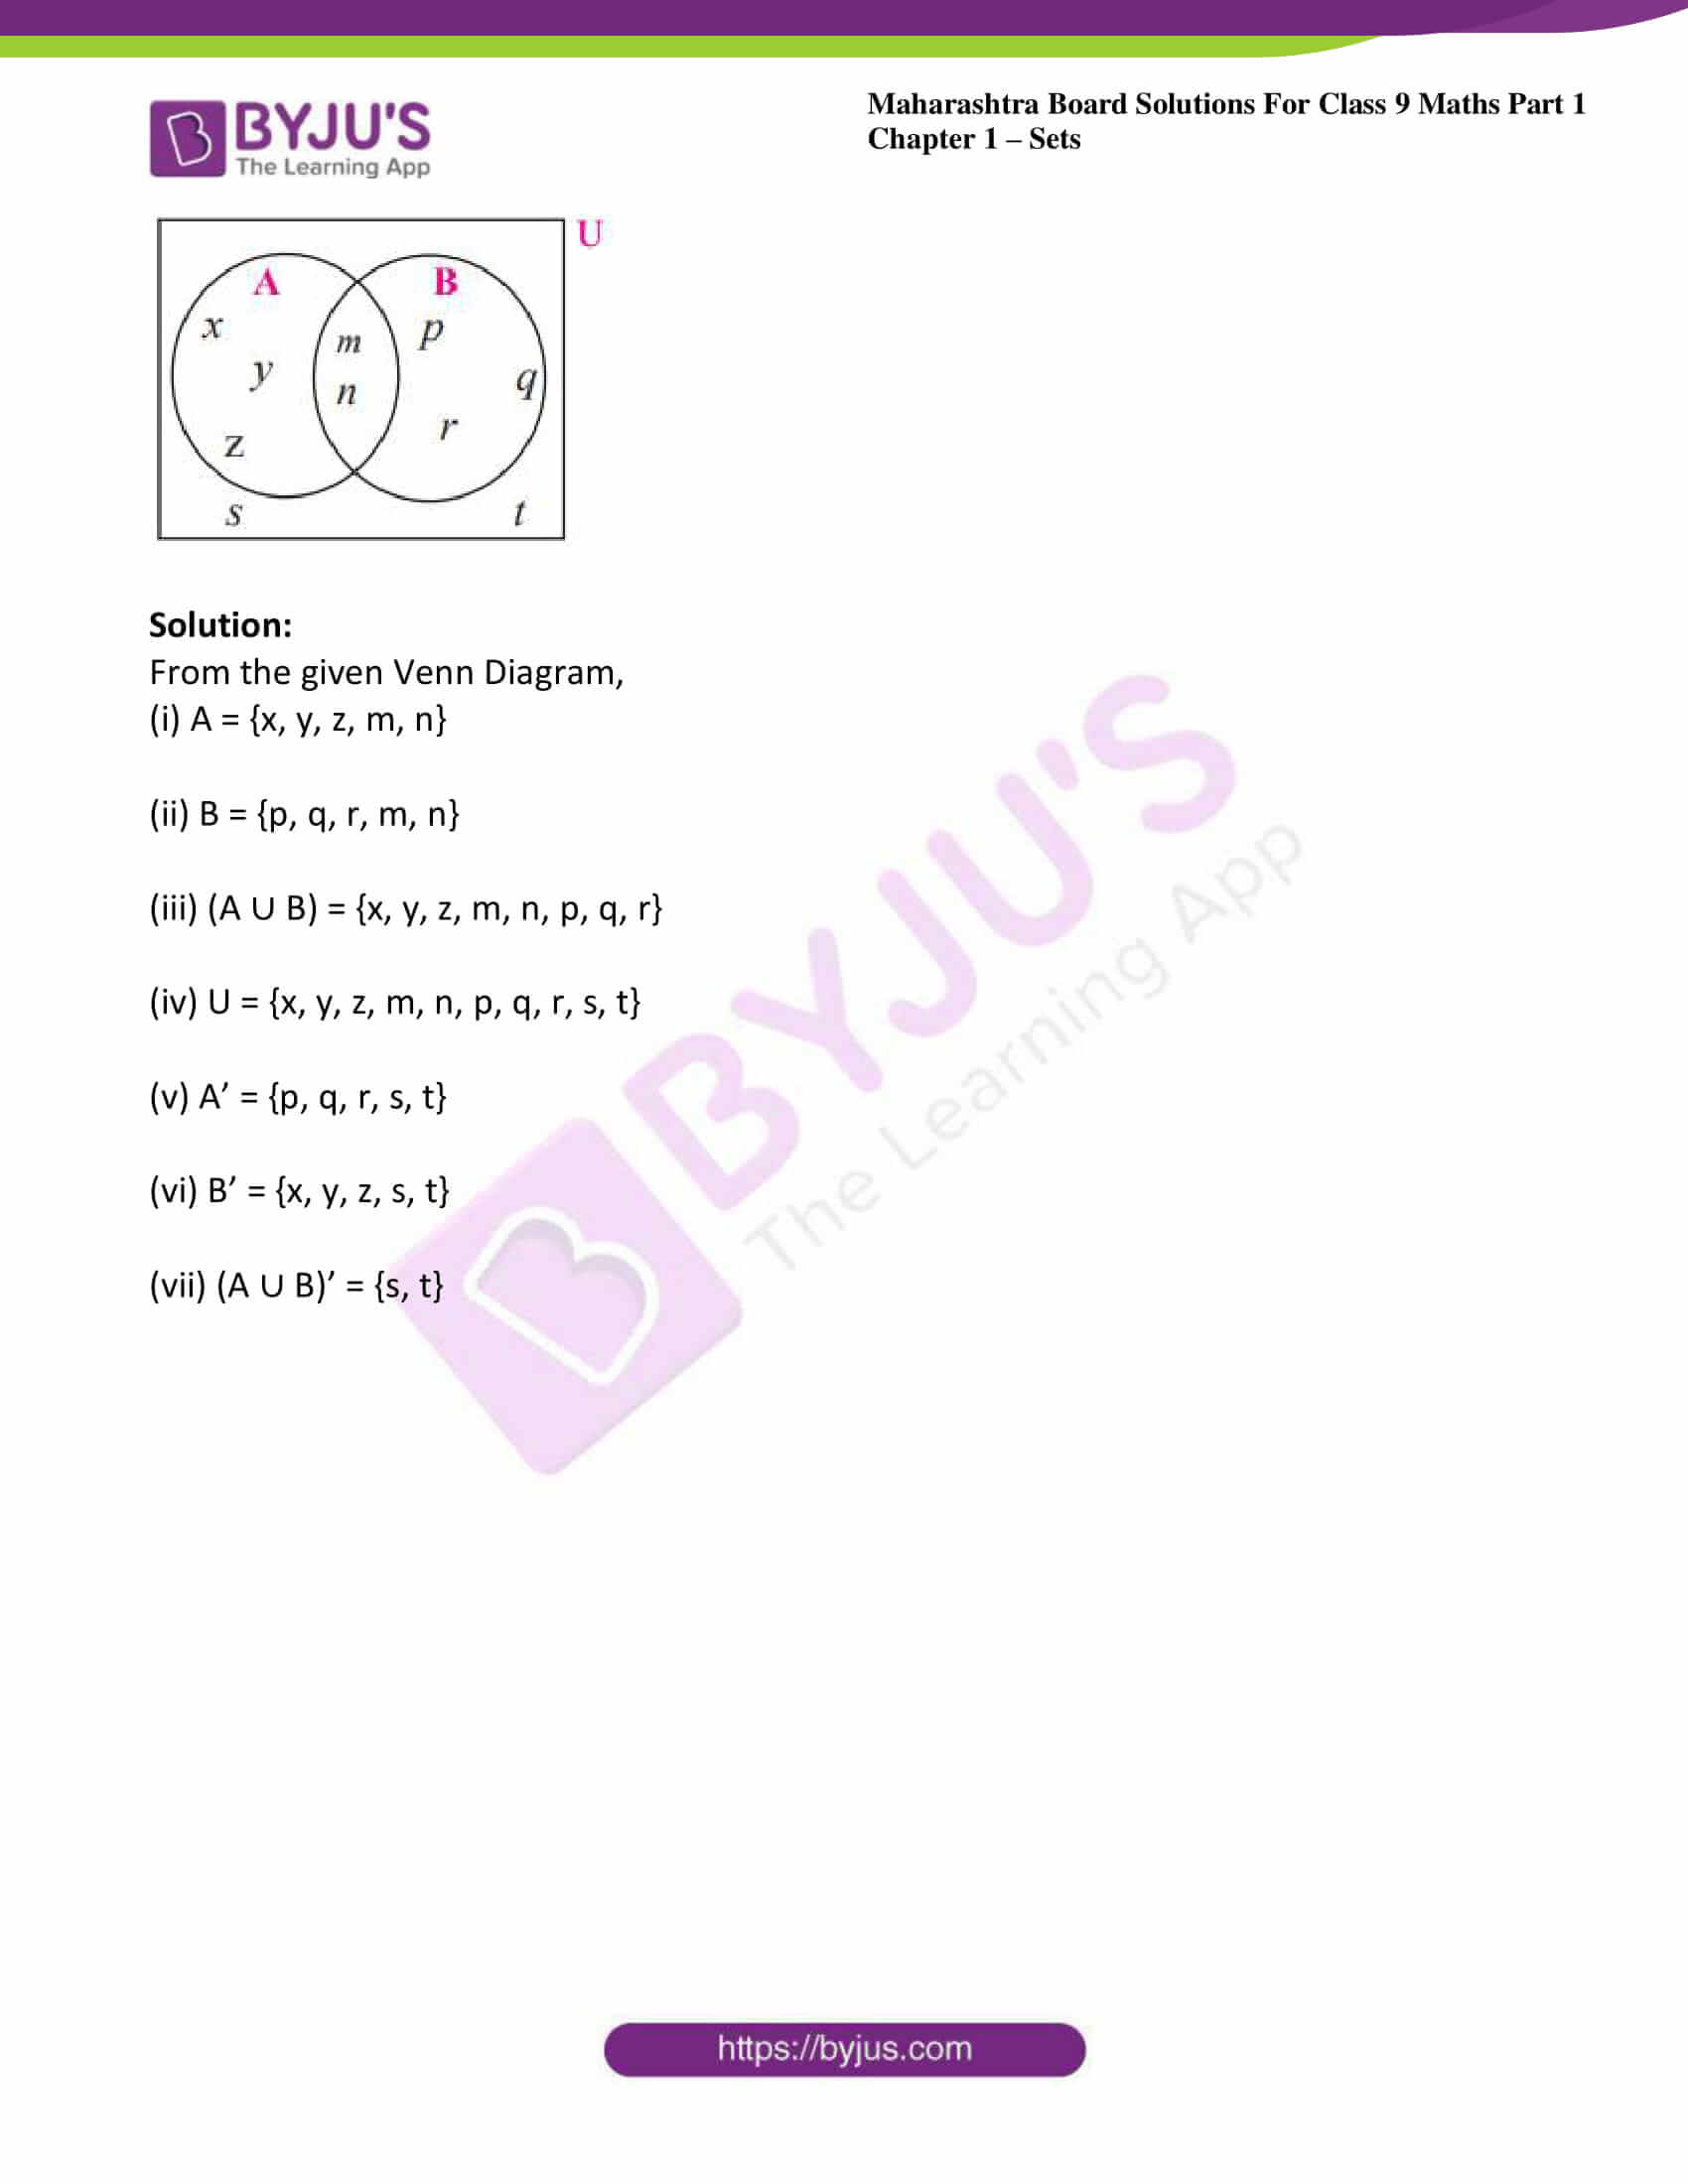 msbshse sol class 9 maths part 1 chapter 1 sets 16